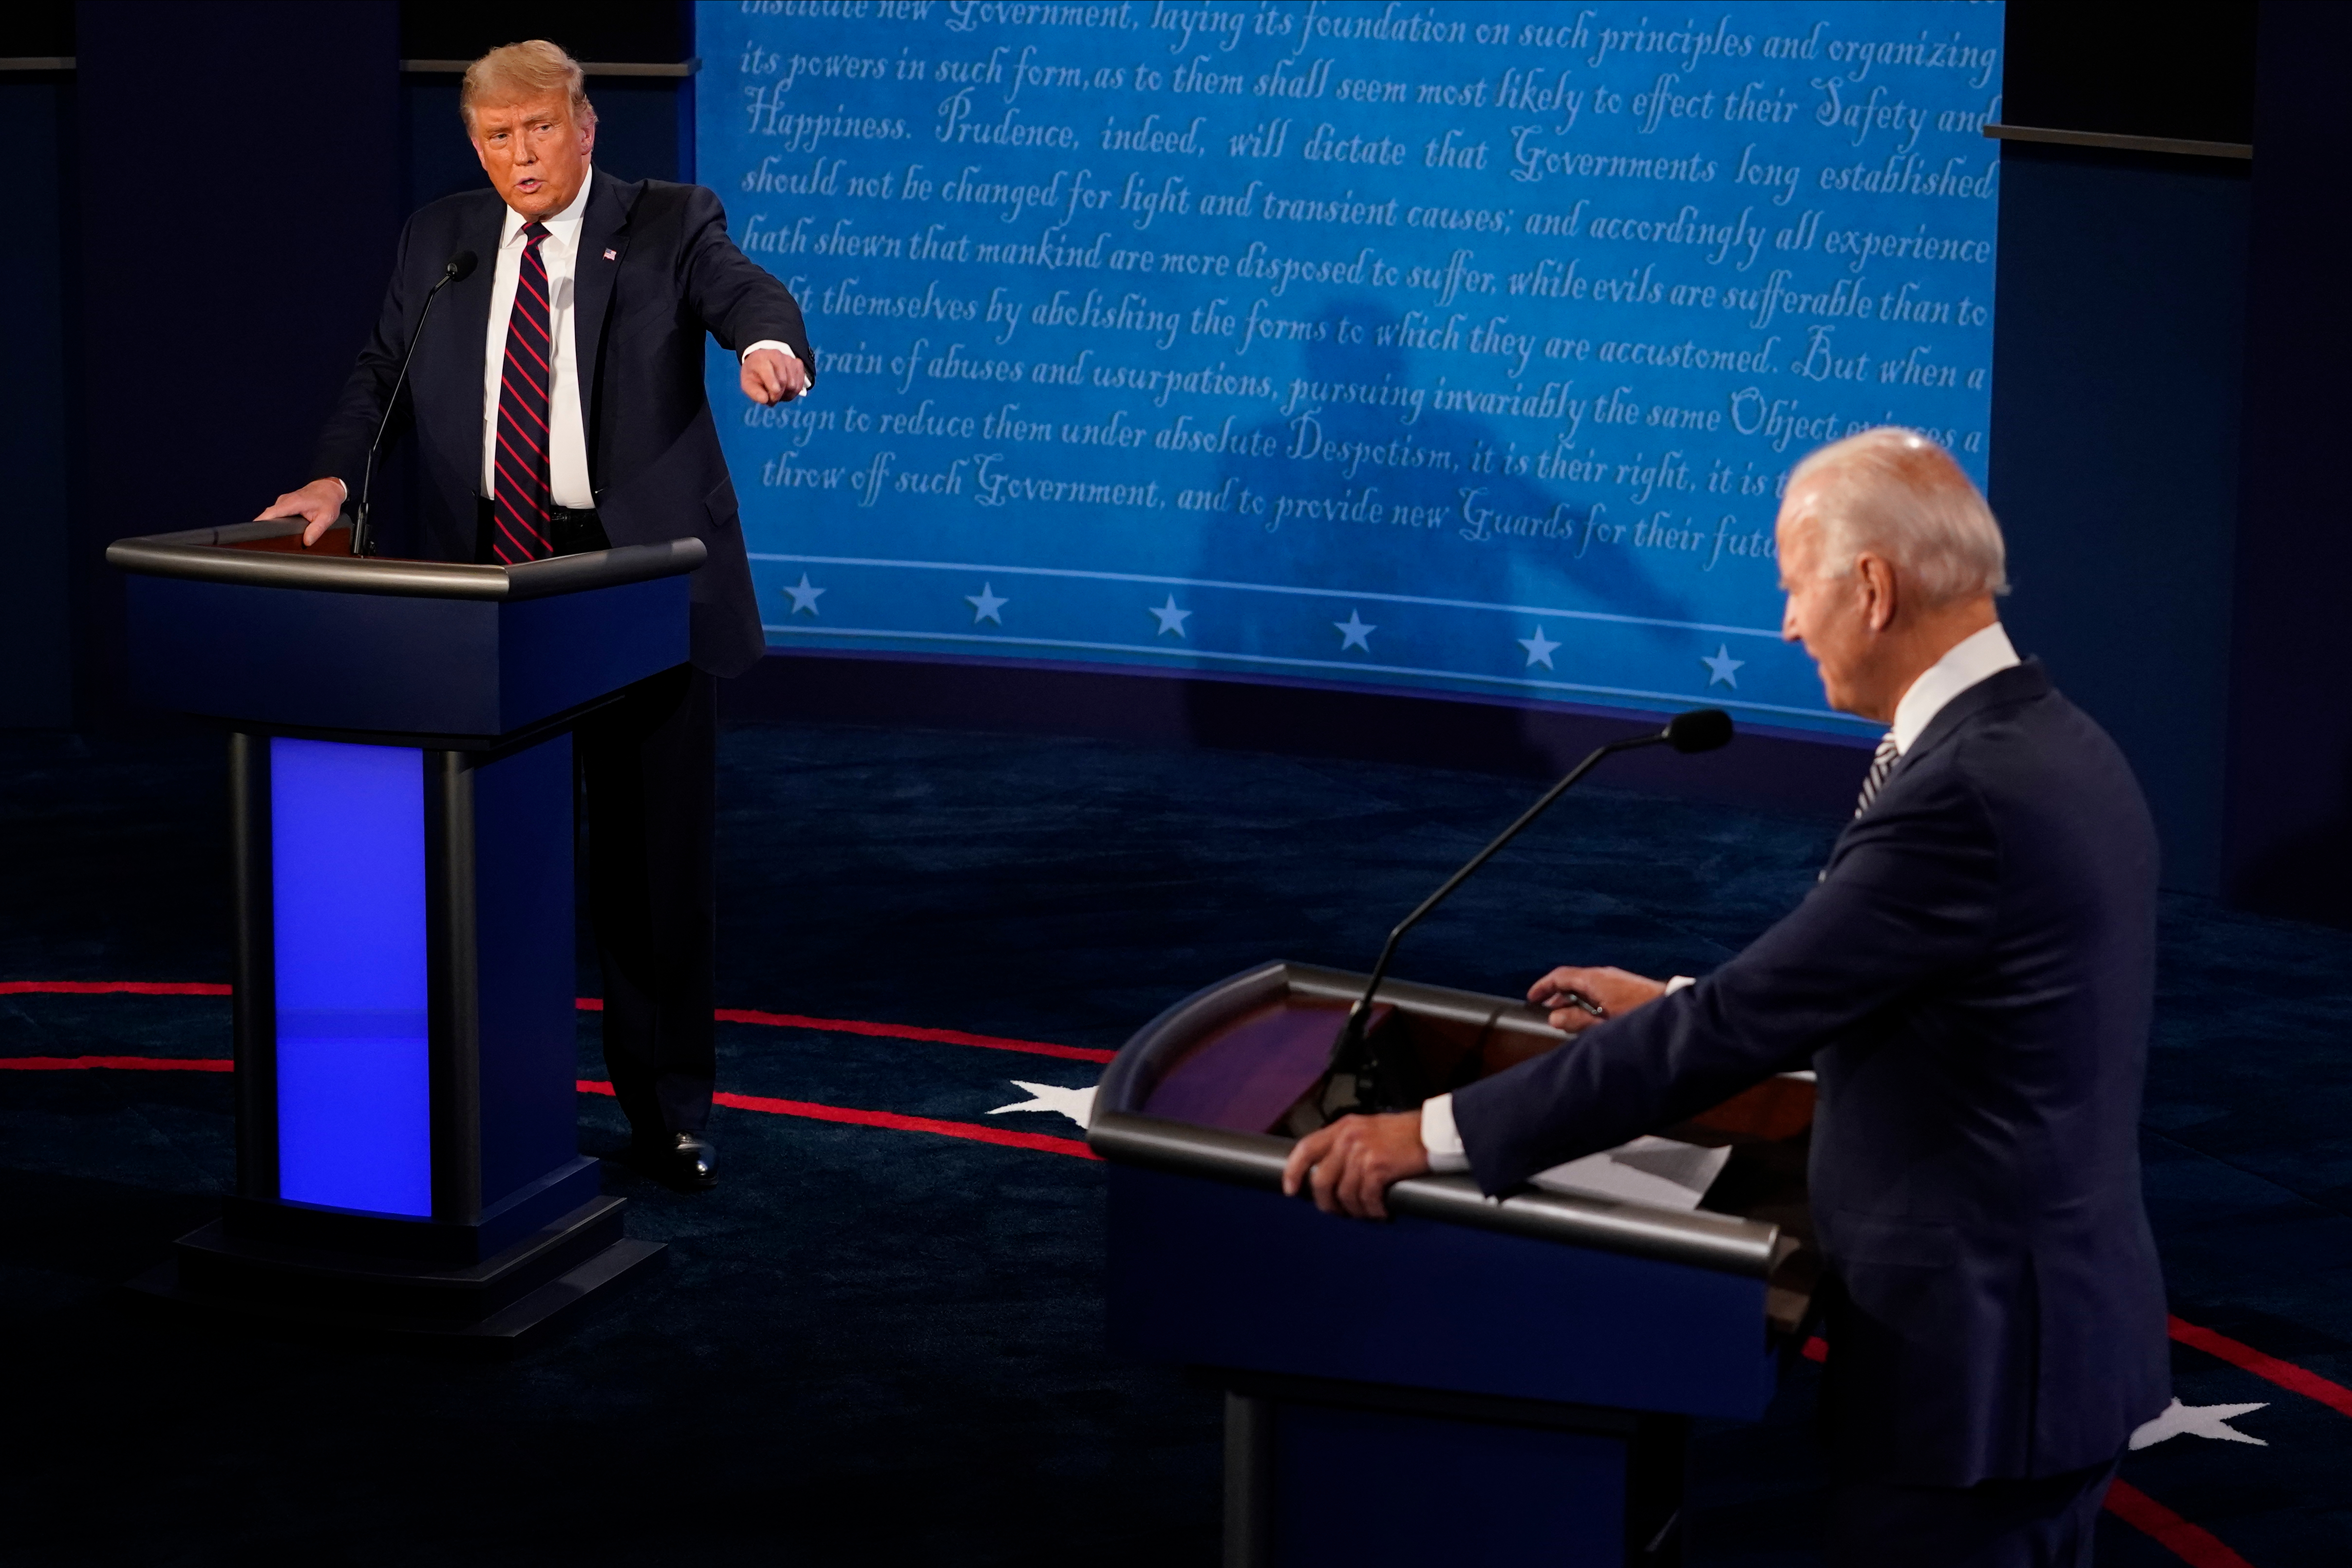 President Donald Trump and Joe Biden speak during the first presidential debate at the Health Education Campus of Case Western Reserve University on in Cleveland, Ohio. (Photo by Morry Gash-Pool/Getty Images)